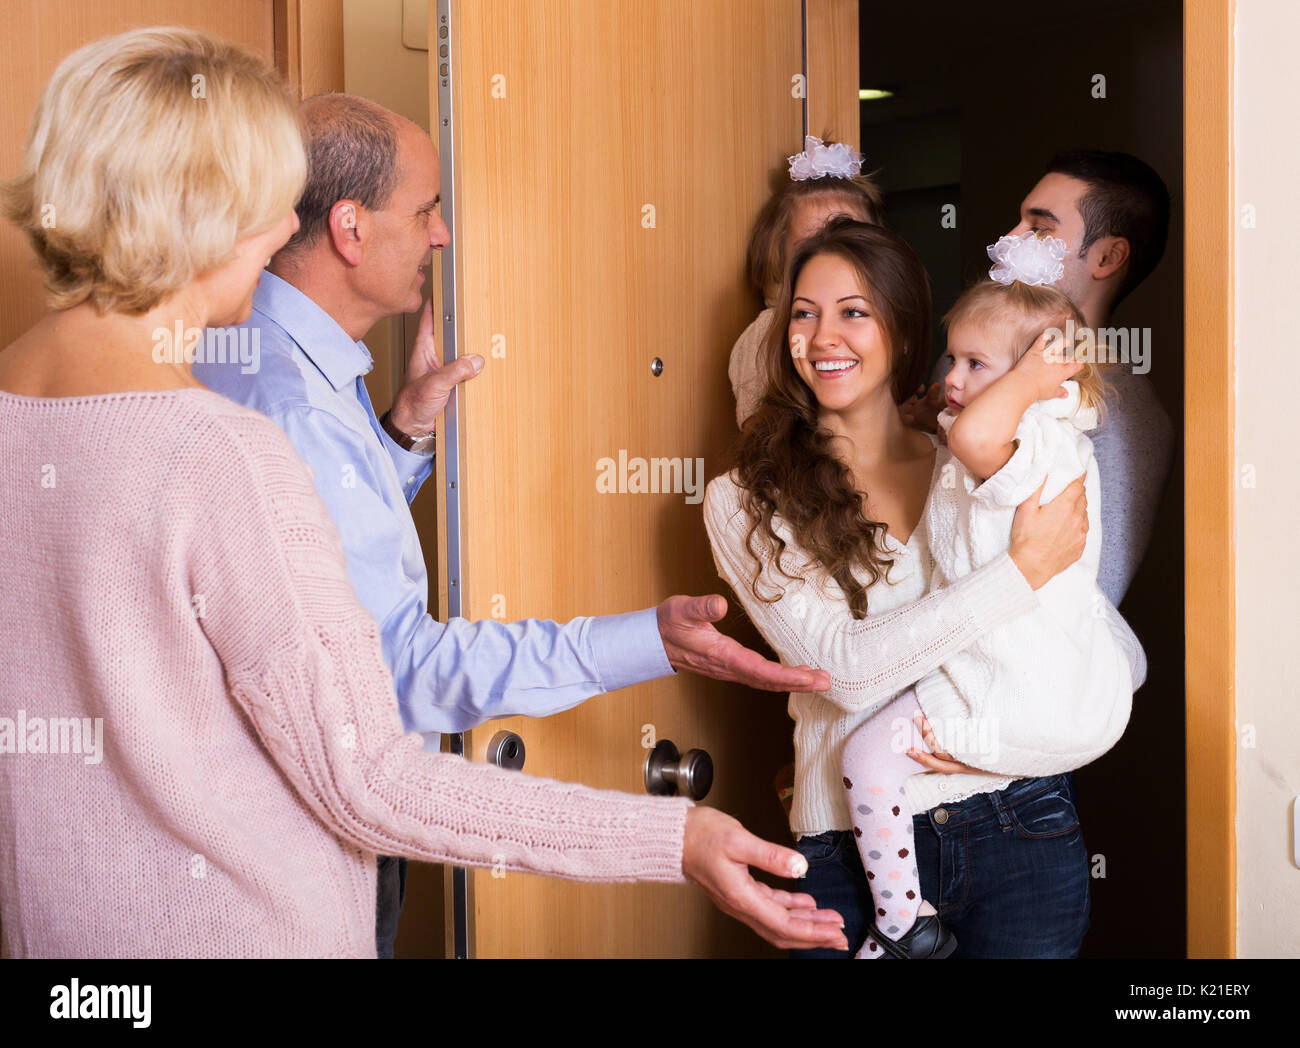 smiling young family with two daughters visiting grand parents - Stock Image